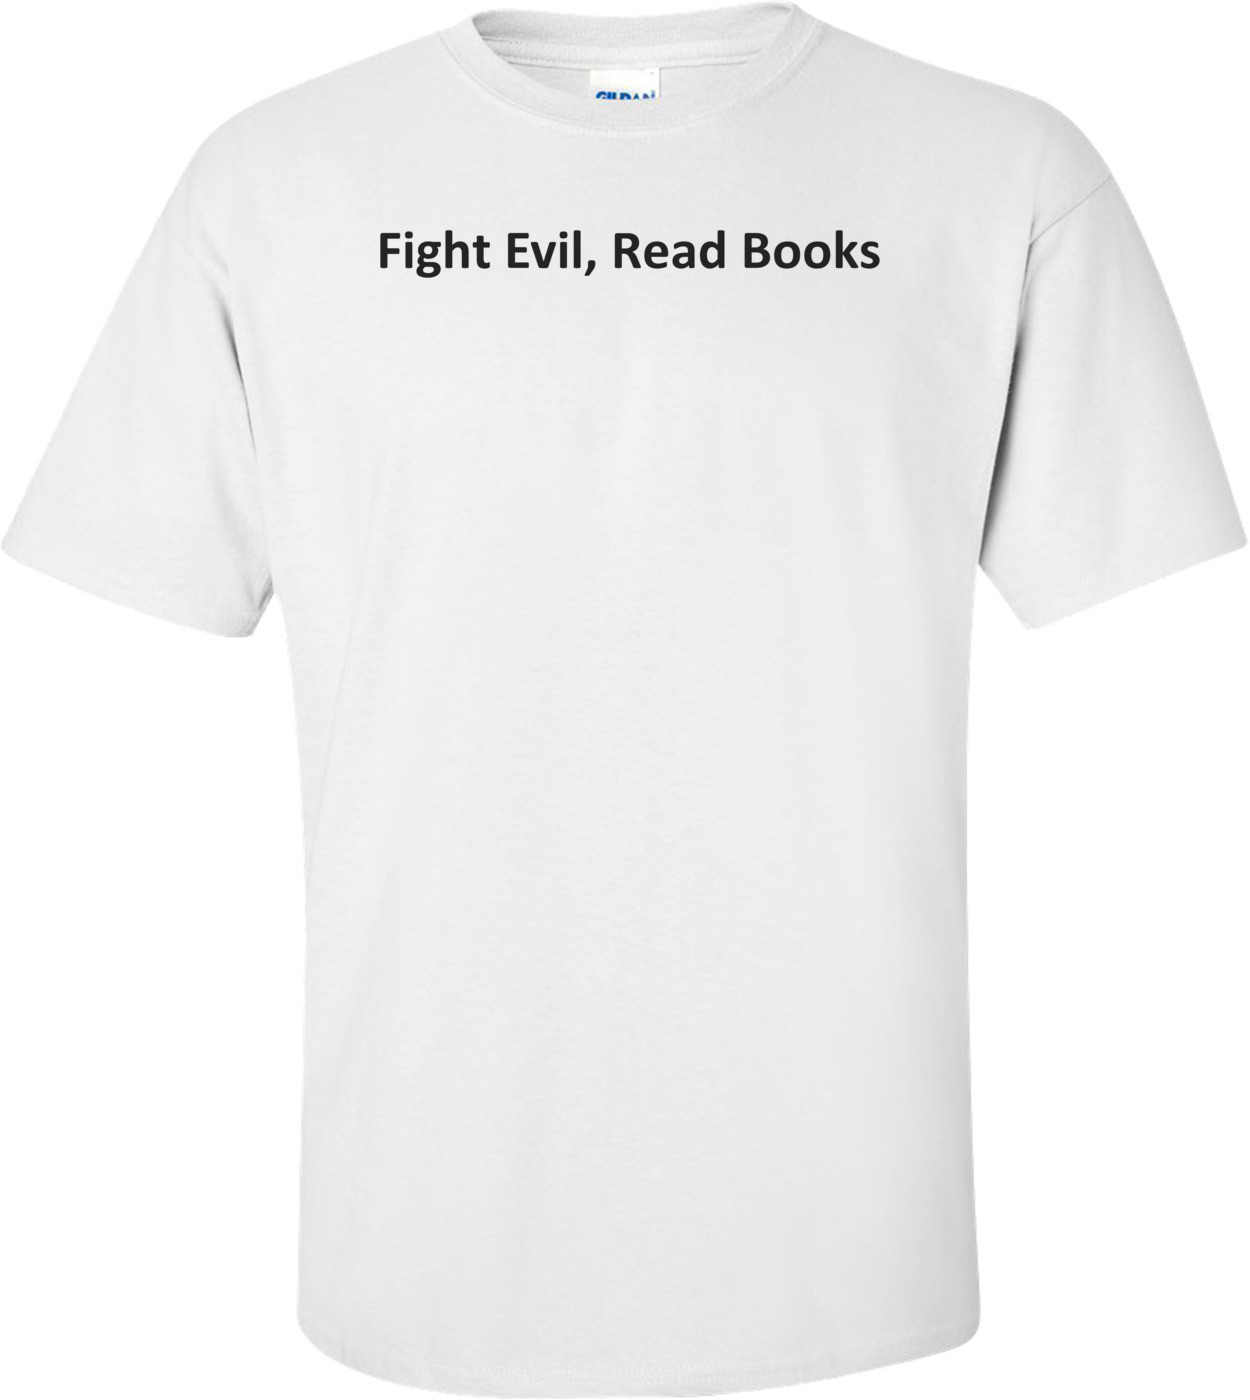 Fight Evil, Read Books T-Shirt